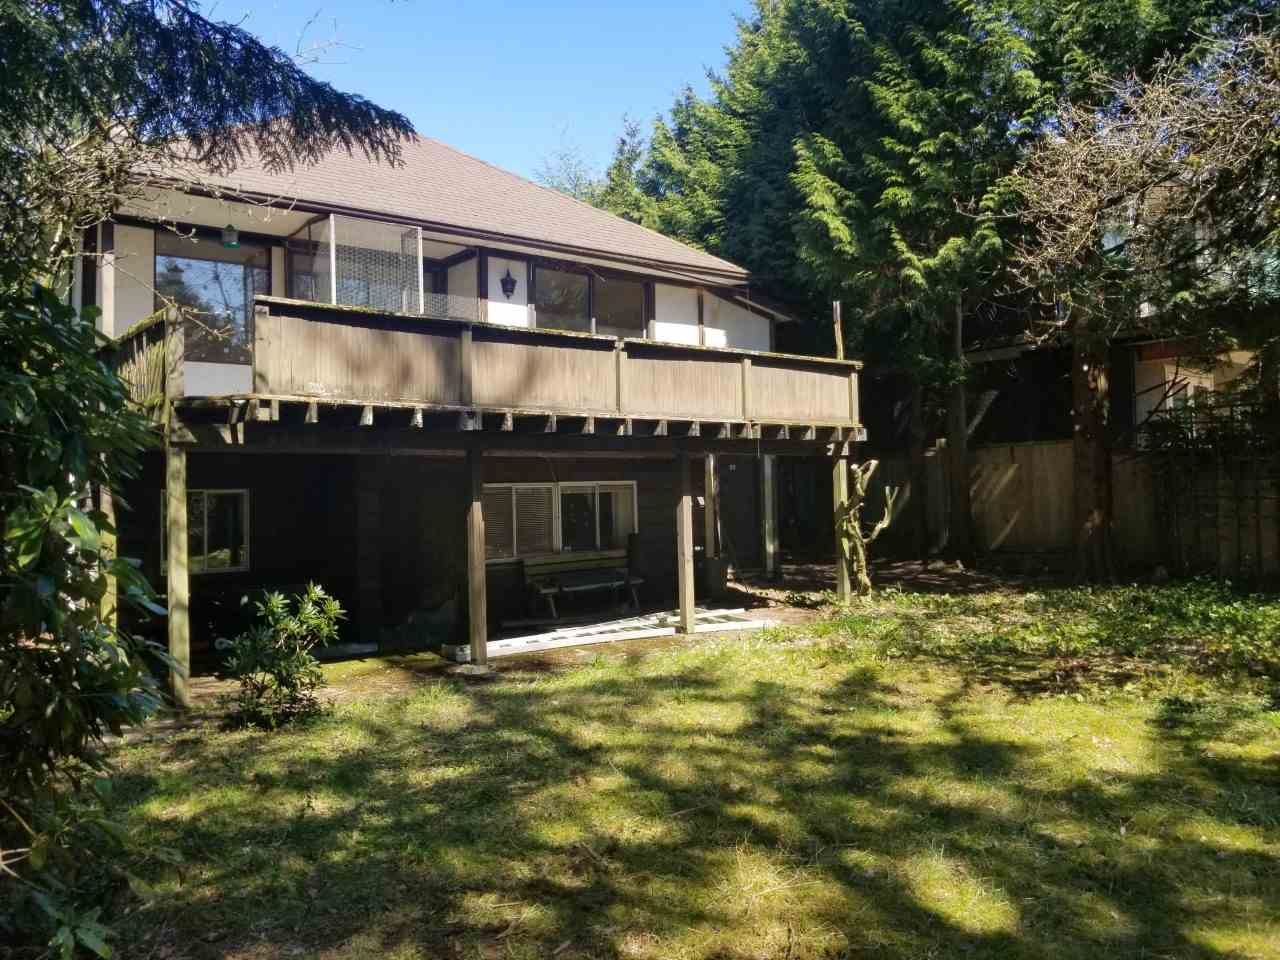 293 W WINDSOR ROAD - Upper Lonsdale House/Single Family for sale, 3 Bedrooms (R2571088) - #3